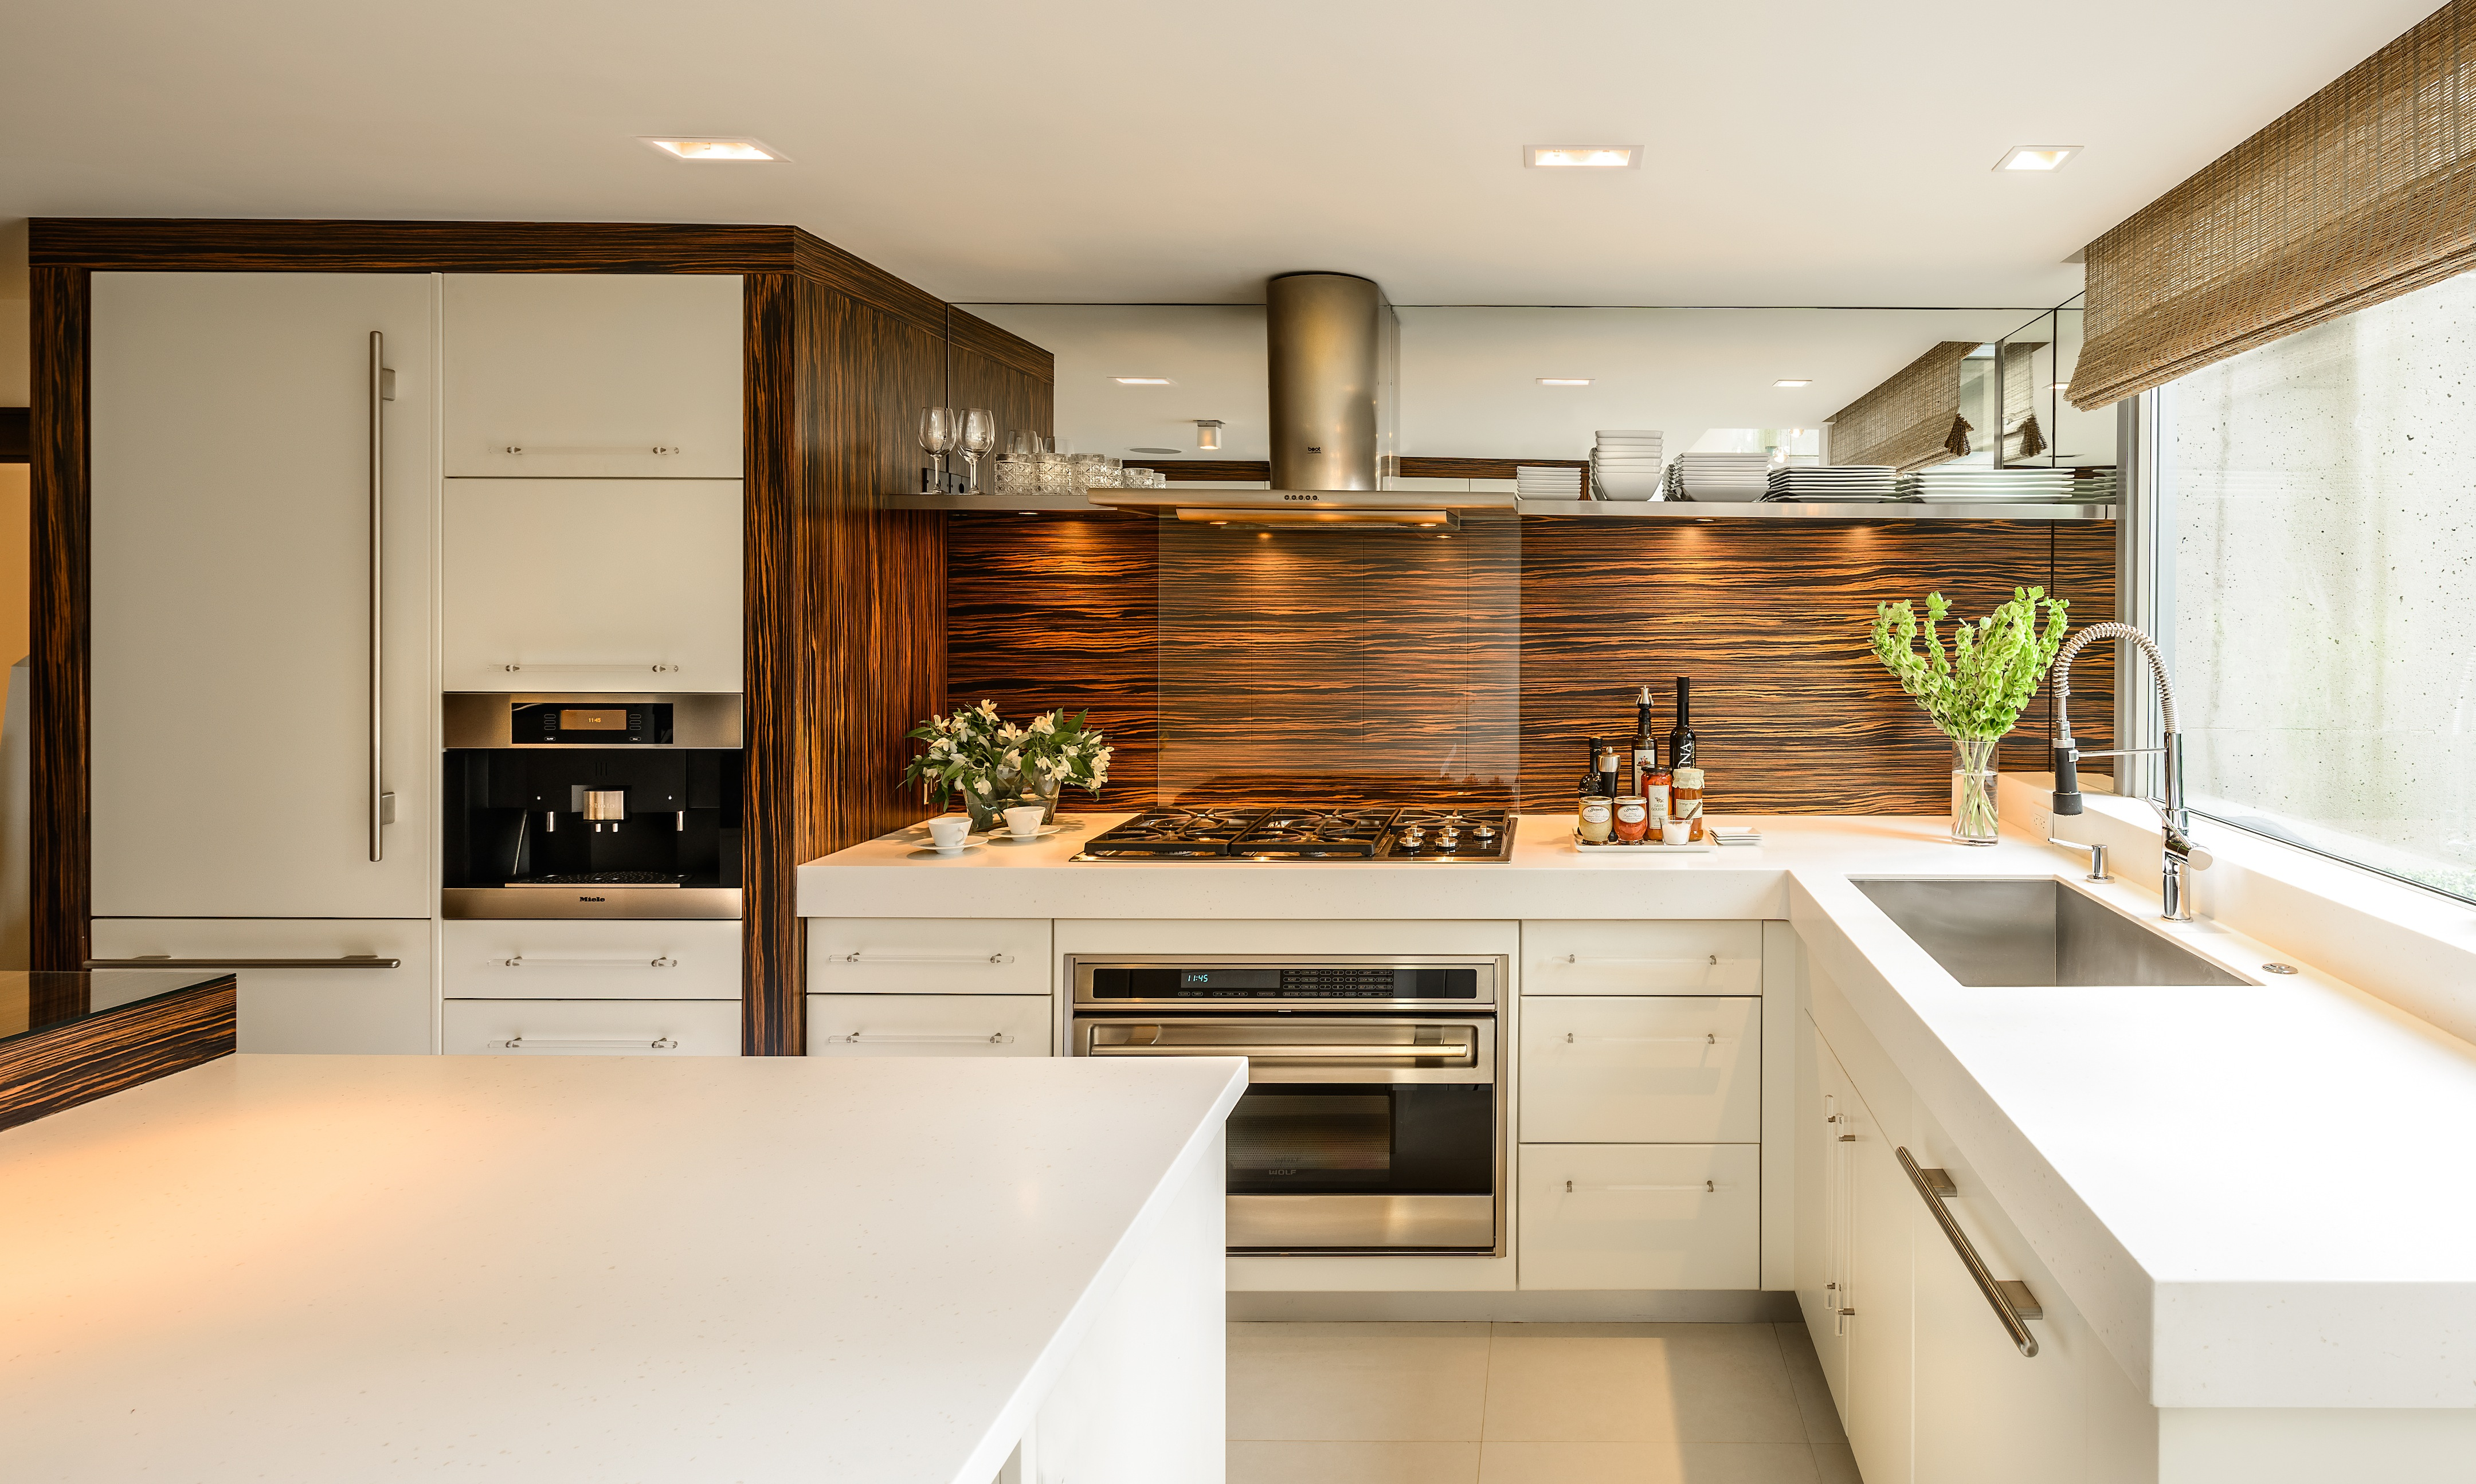 kitchen design pictures lowes remodel cost 66 beautiful ideas for the heart of your home source